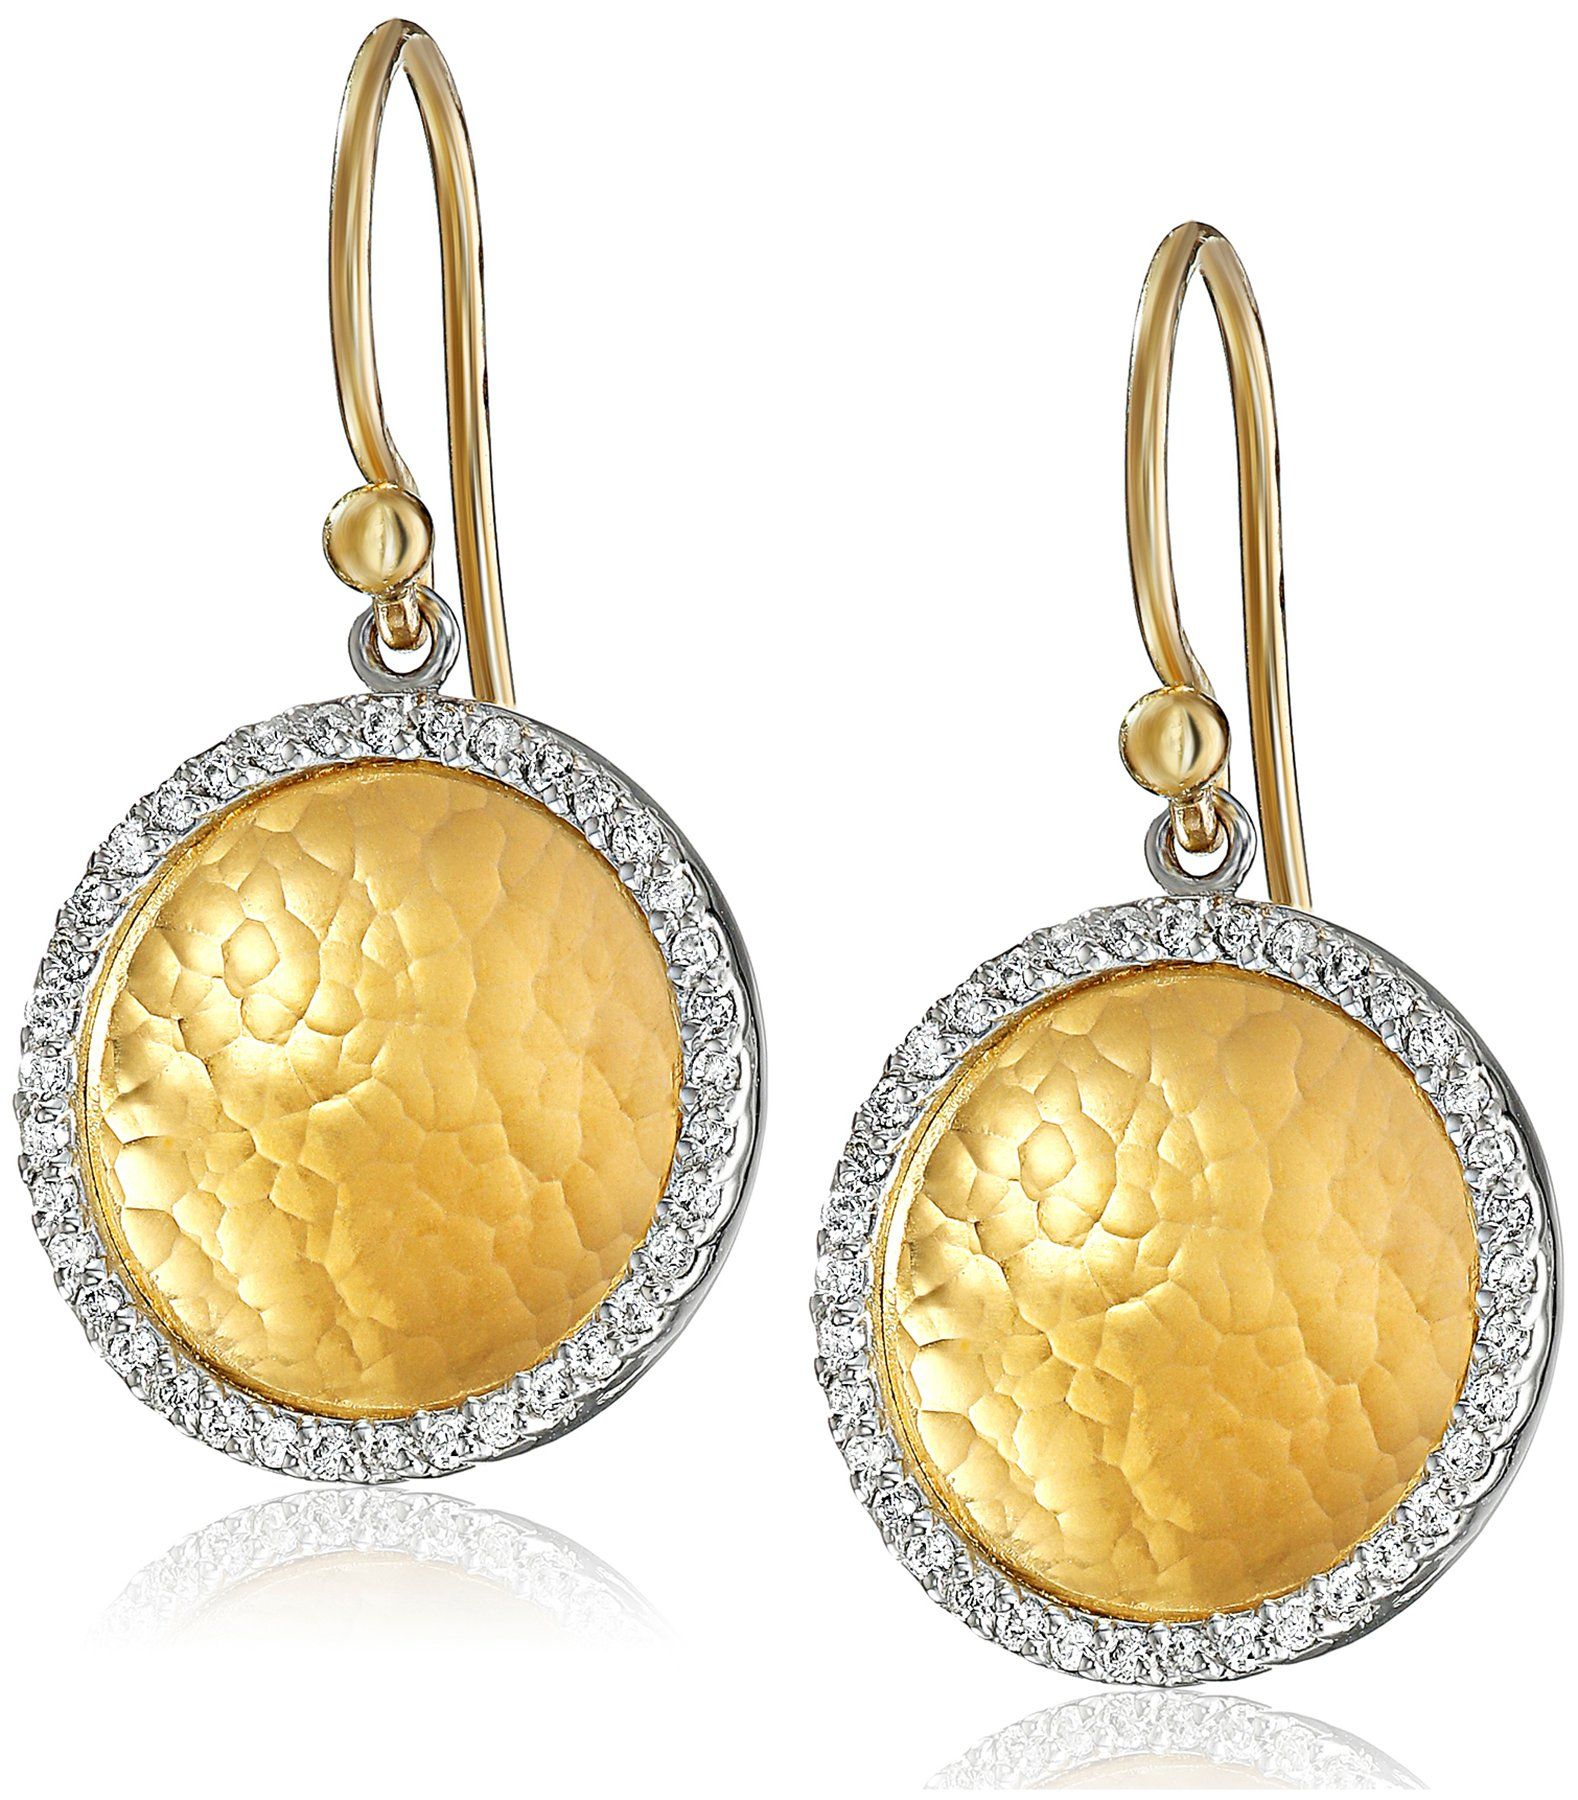 Gurhan Hourglass Earrings